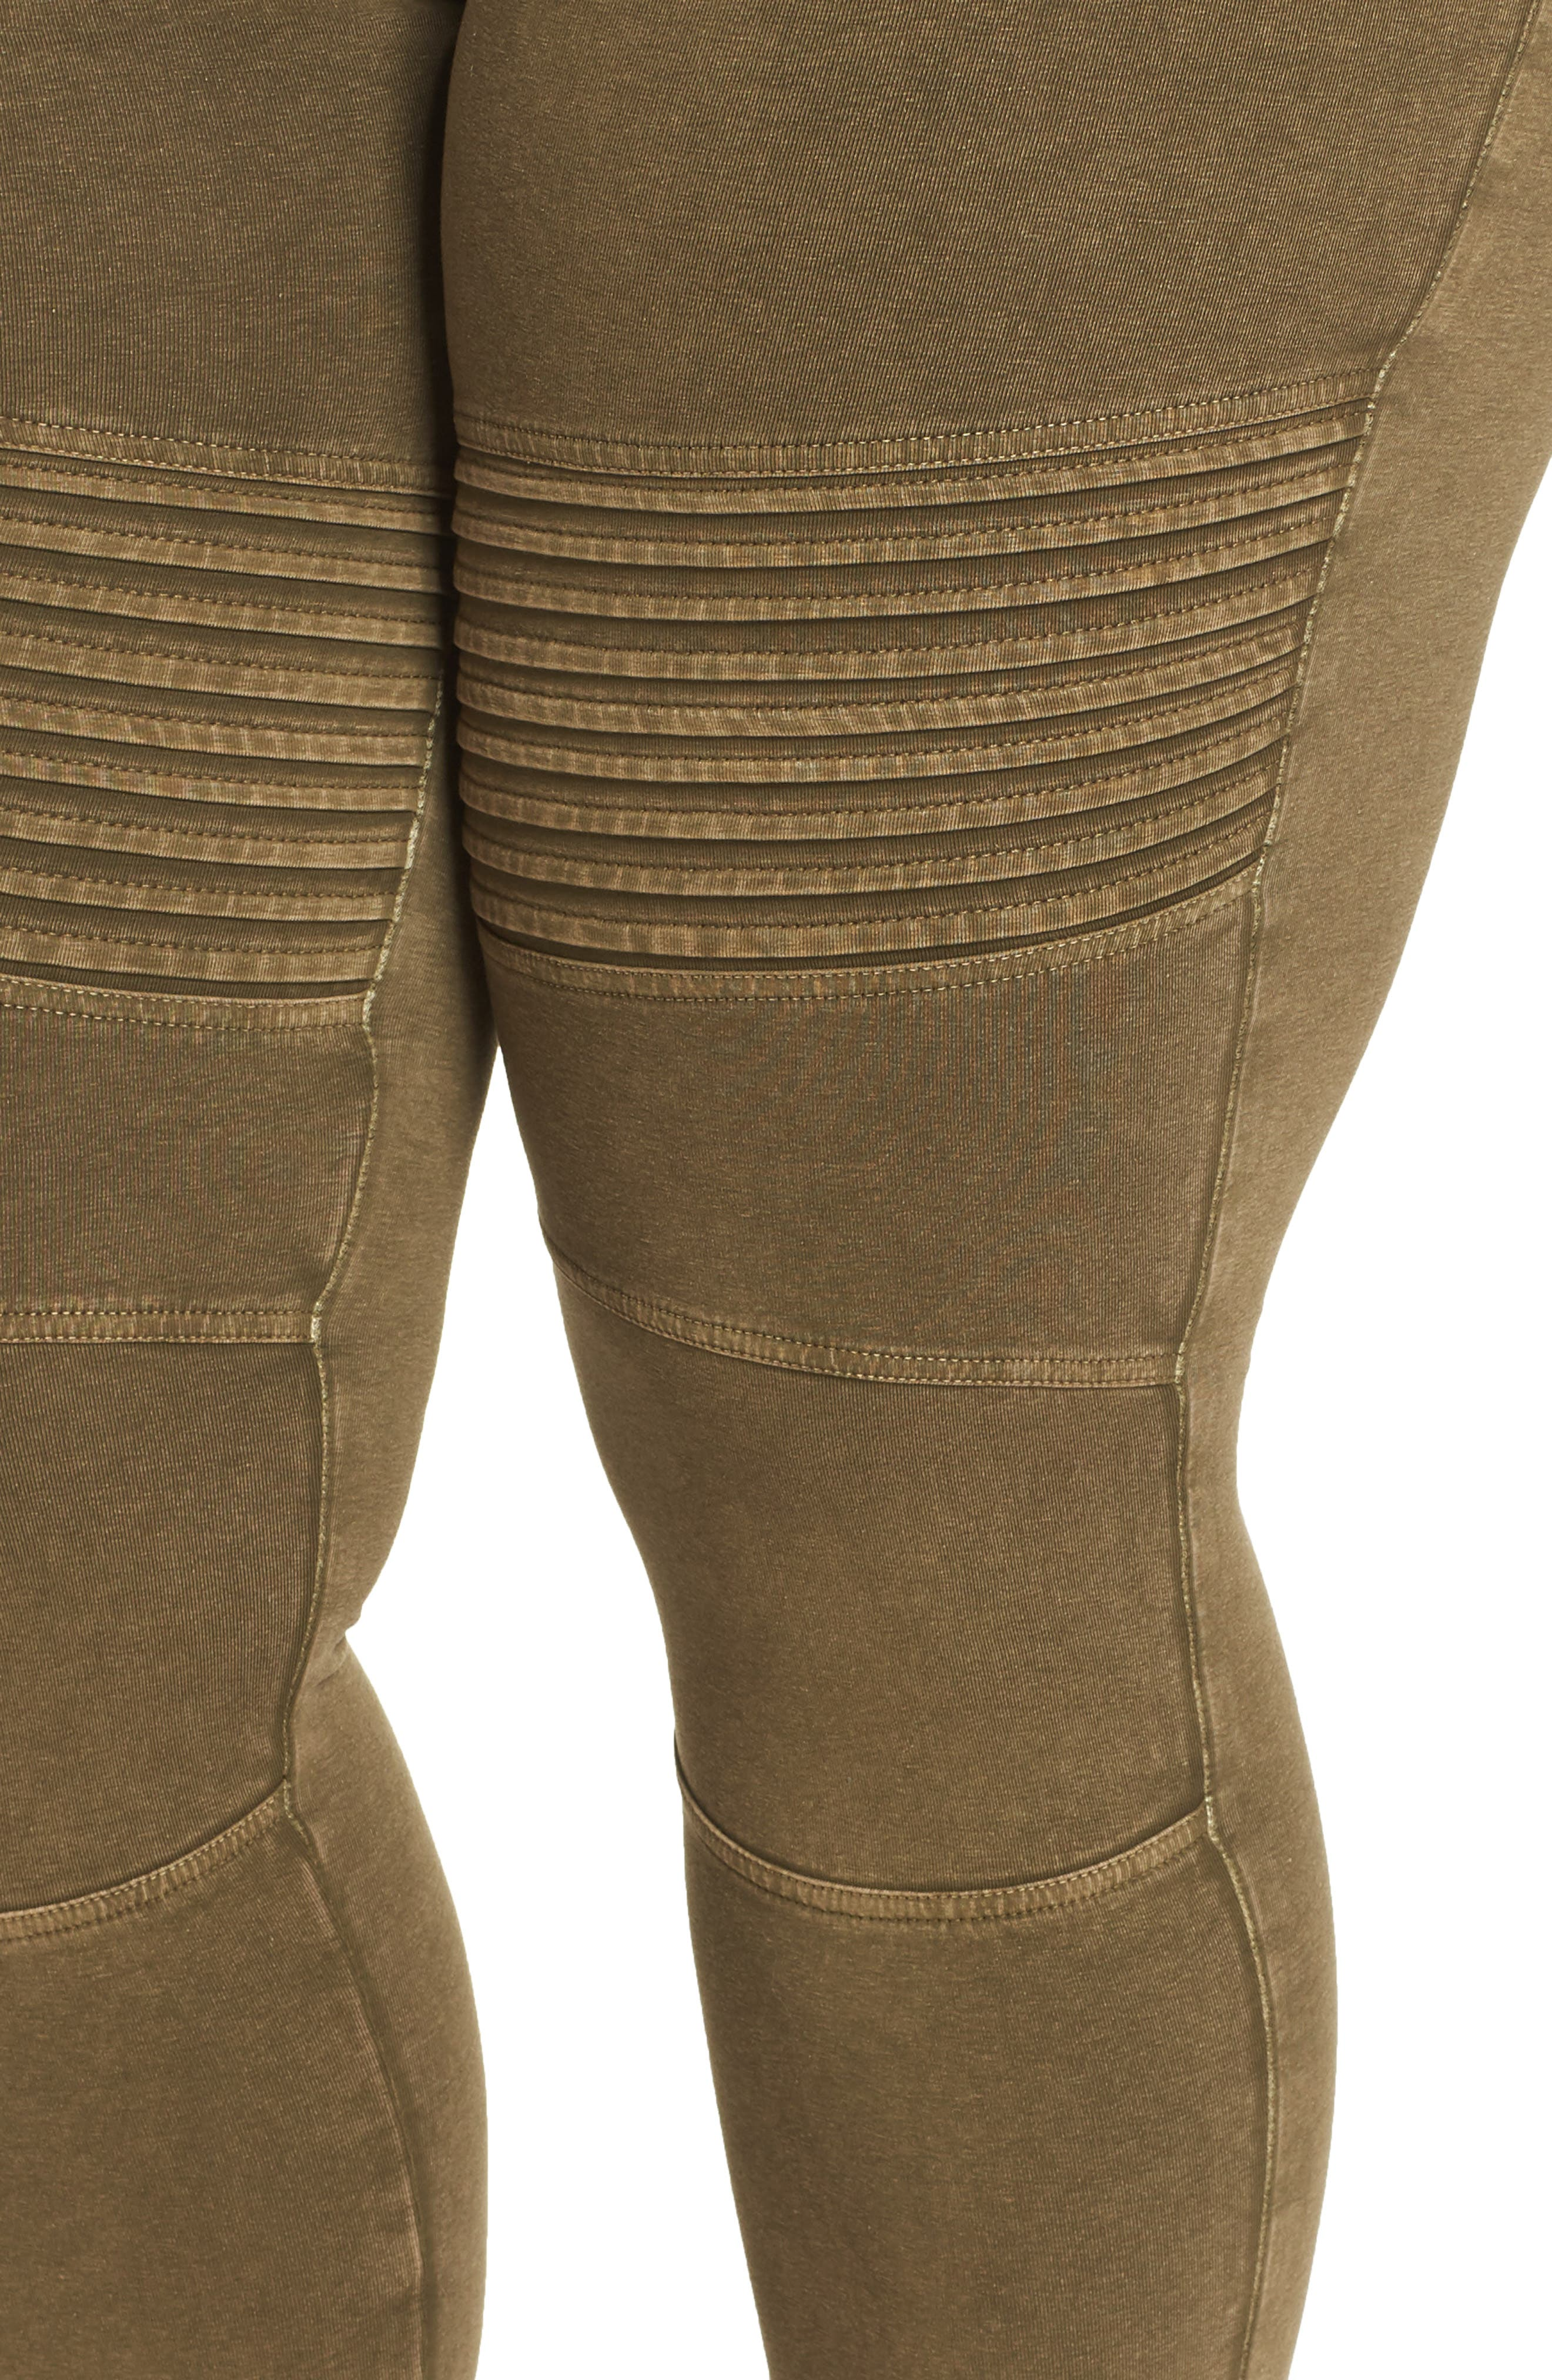 Washed Moto Leggings,                             Alternate thumbnail 11, color,                             OLIVE DARK